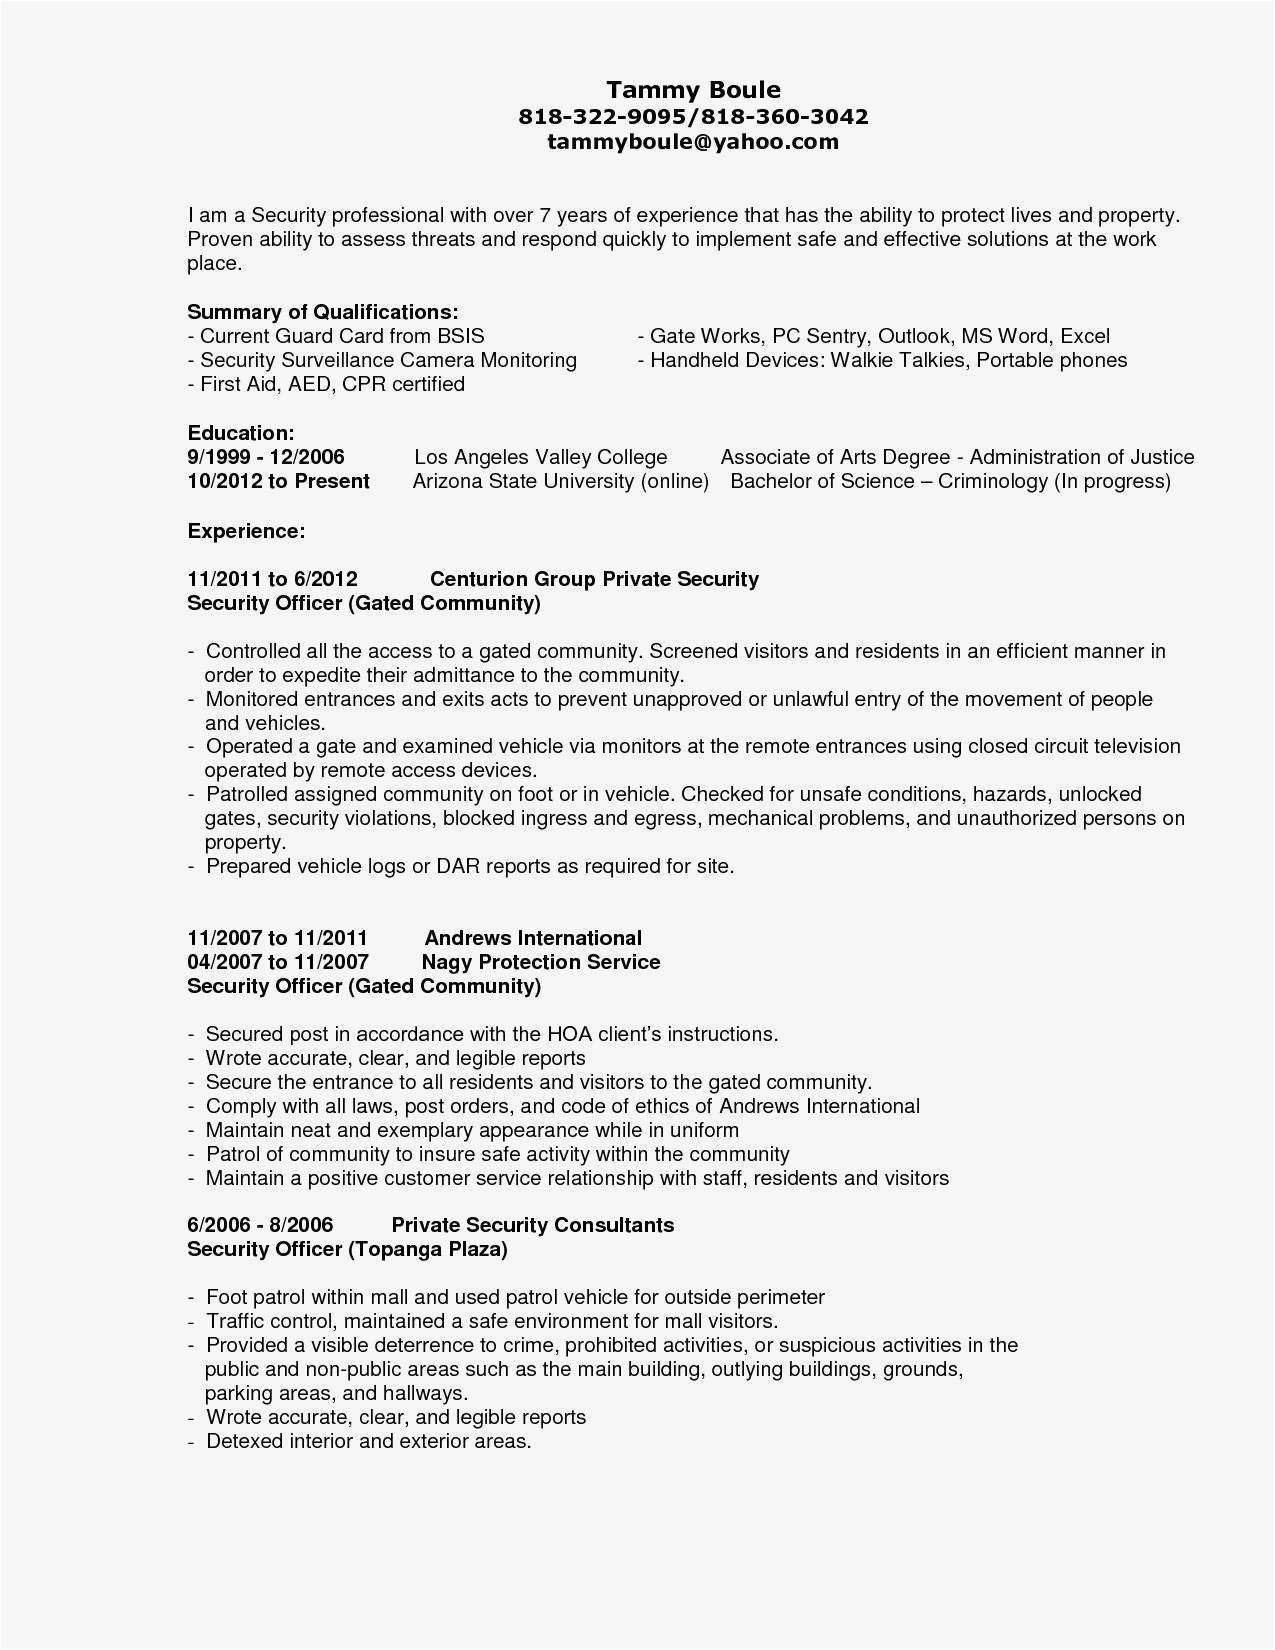 27 Emailing Cover Letter And Resume Resume Examples Resume Template Teacher Resume Examples